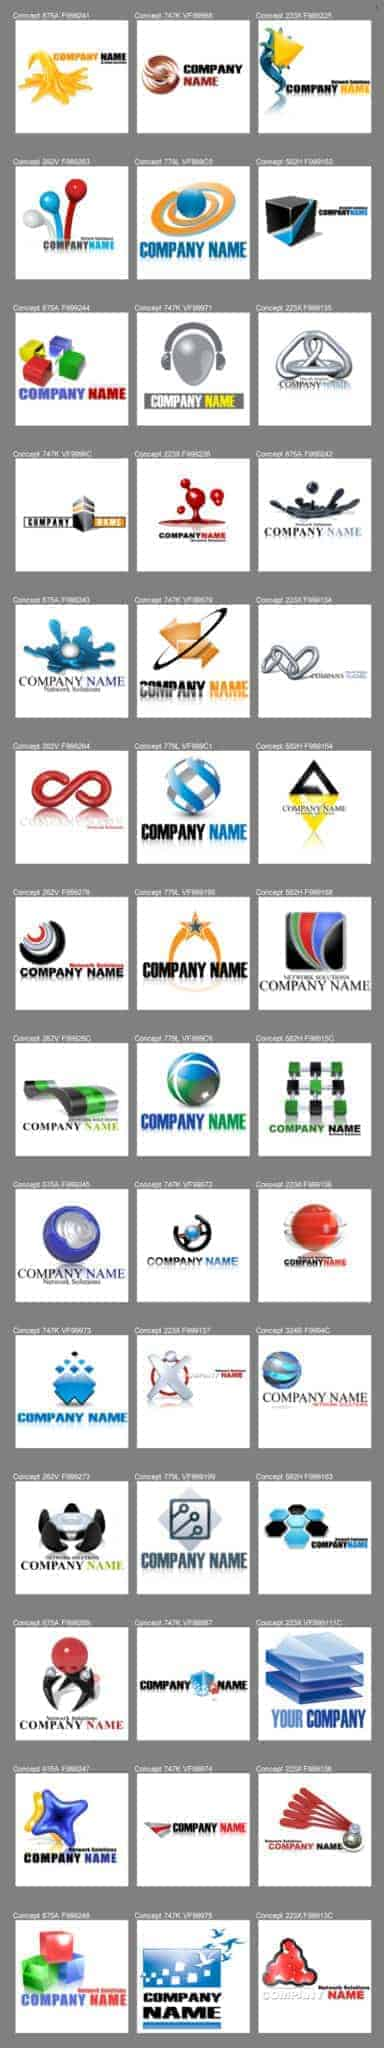 our experts show examples of a great brand logo